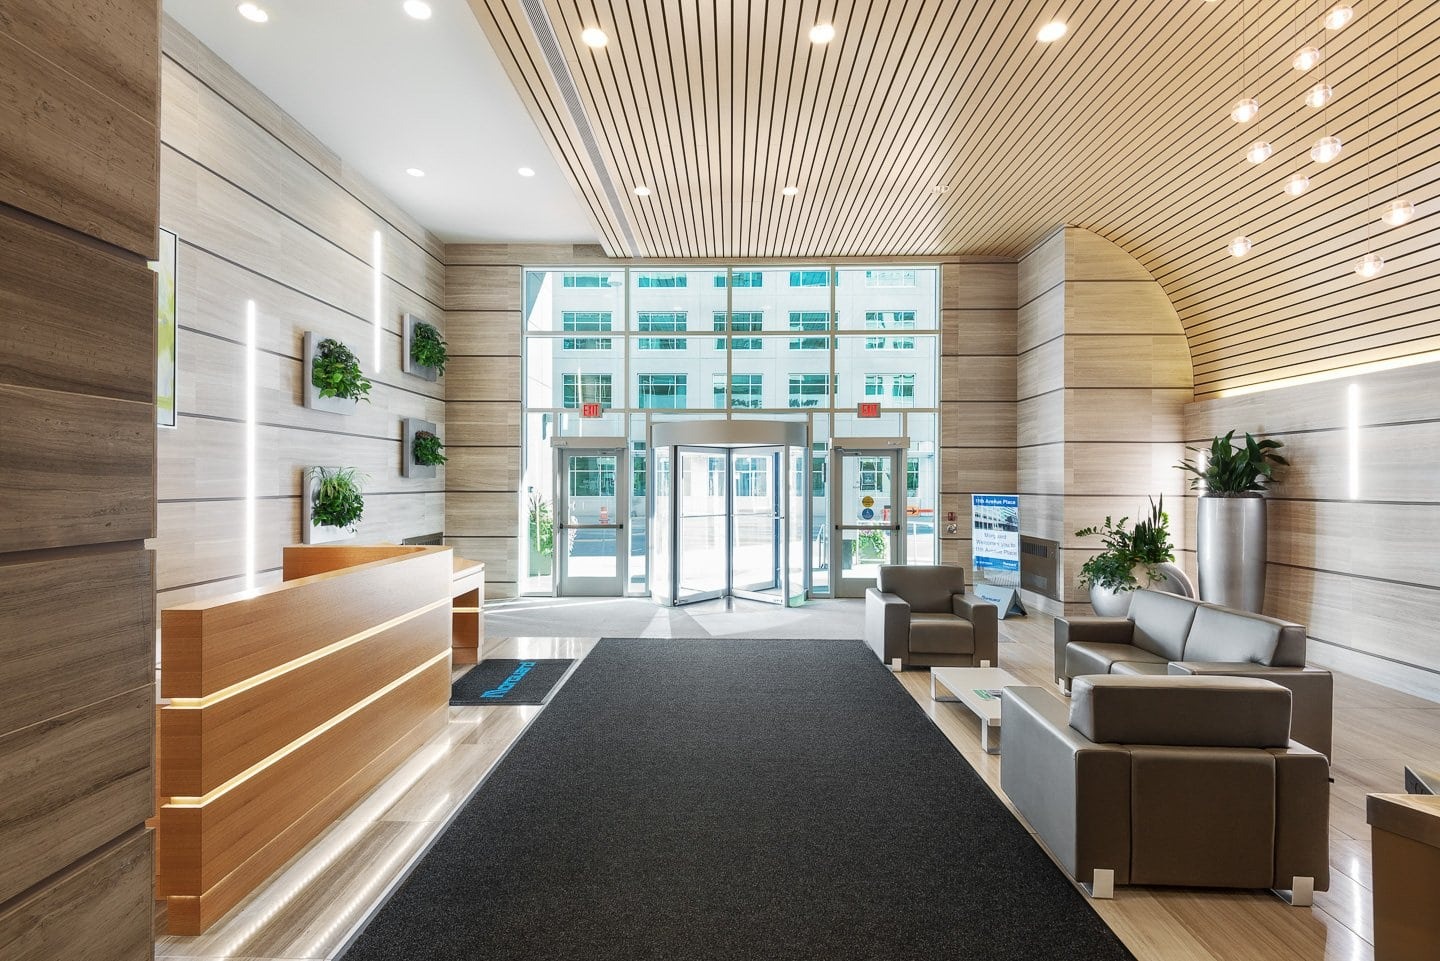 Real estate photography of the interior of a commercial building in Calgary